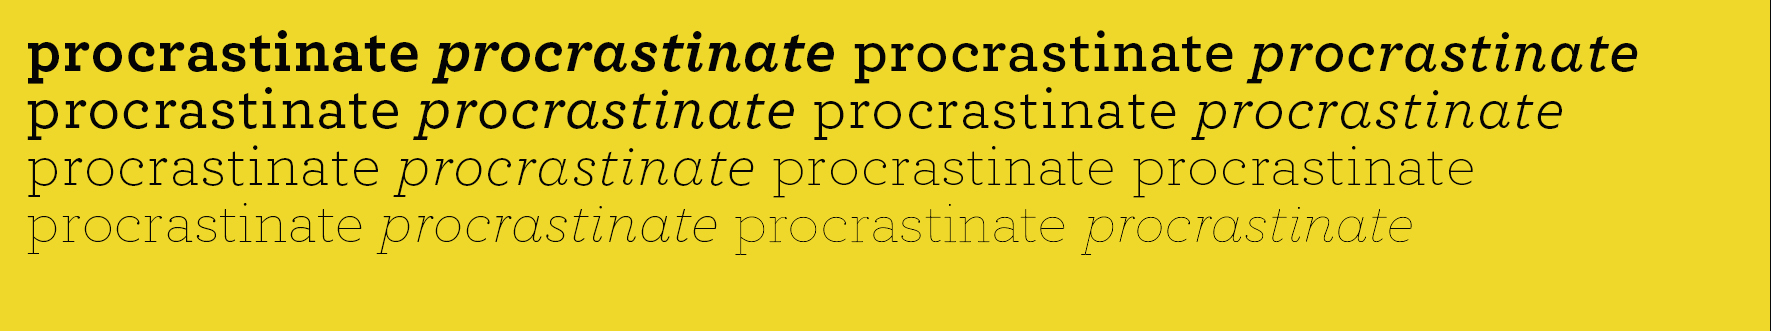 1-coverprocrastinate